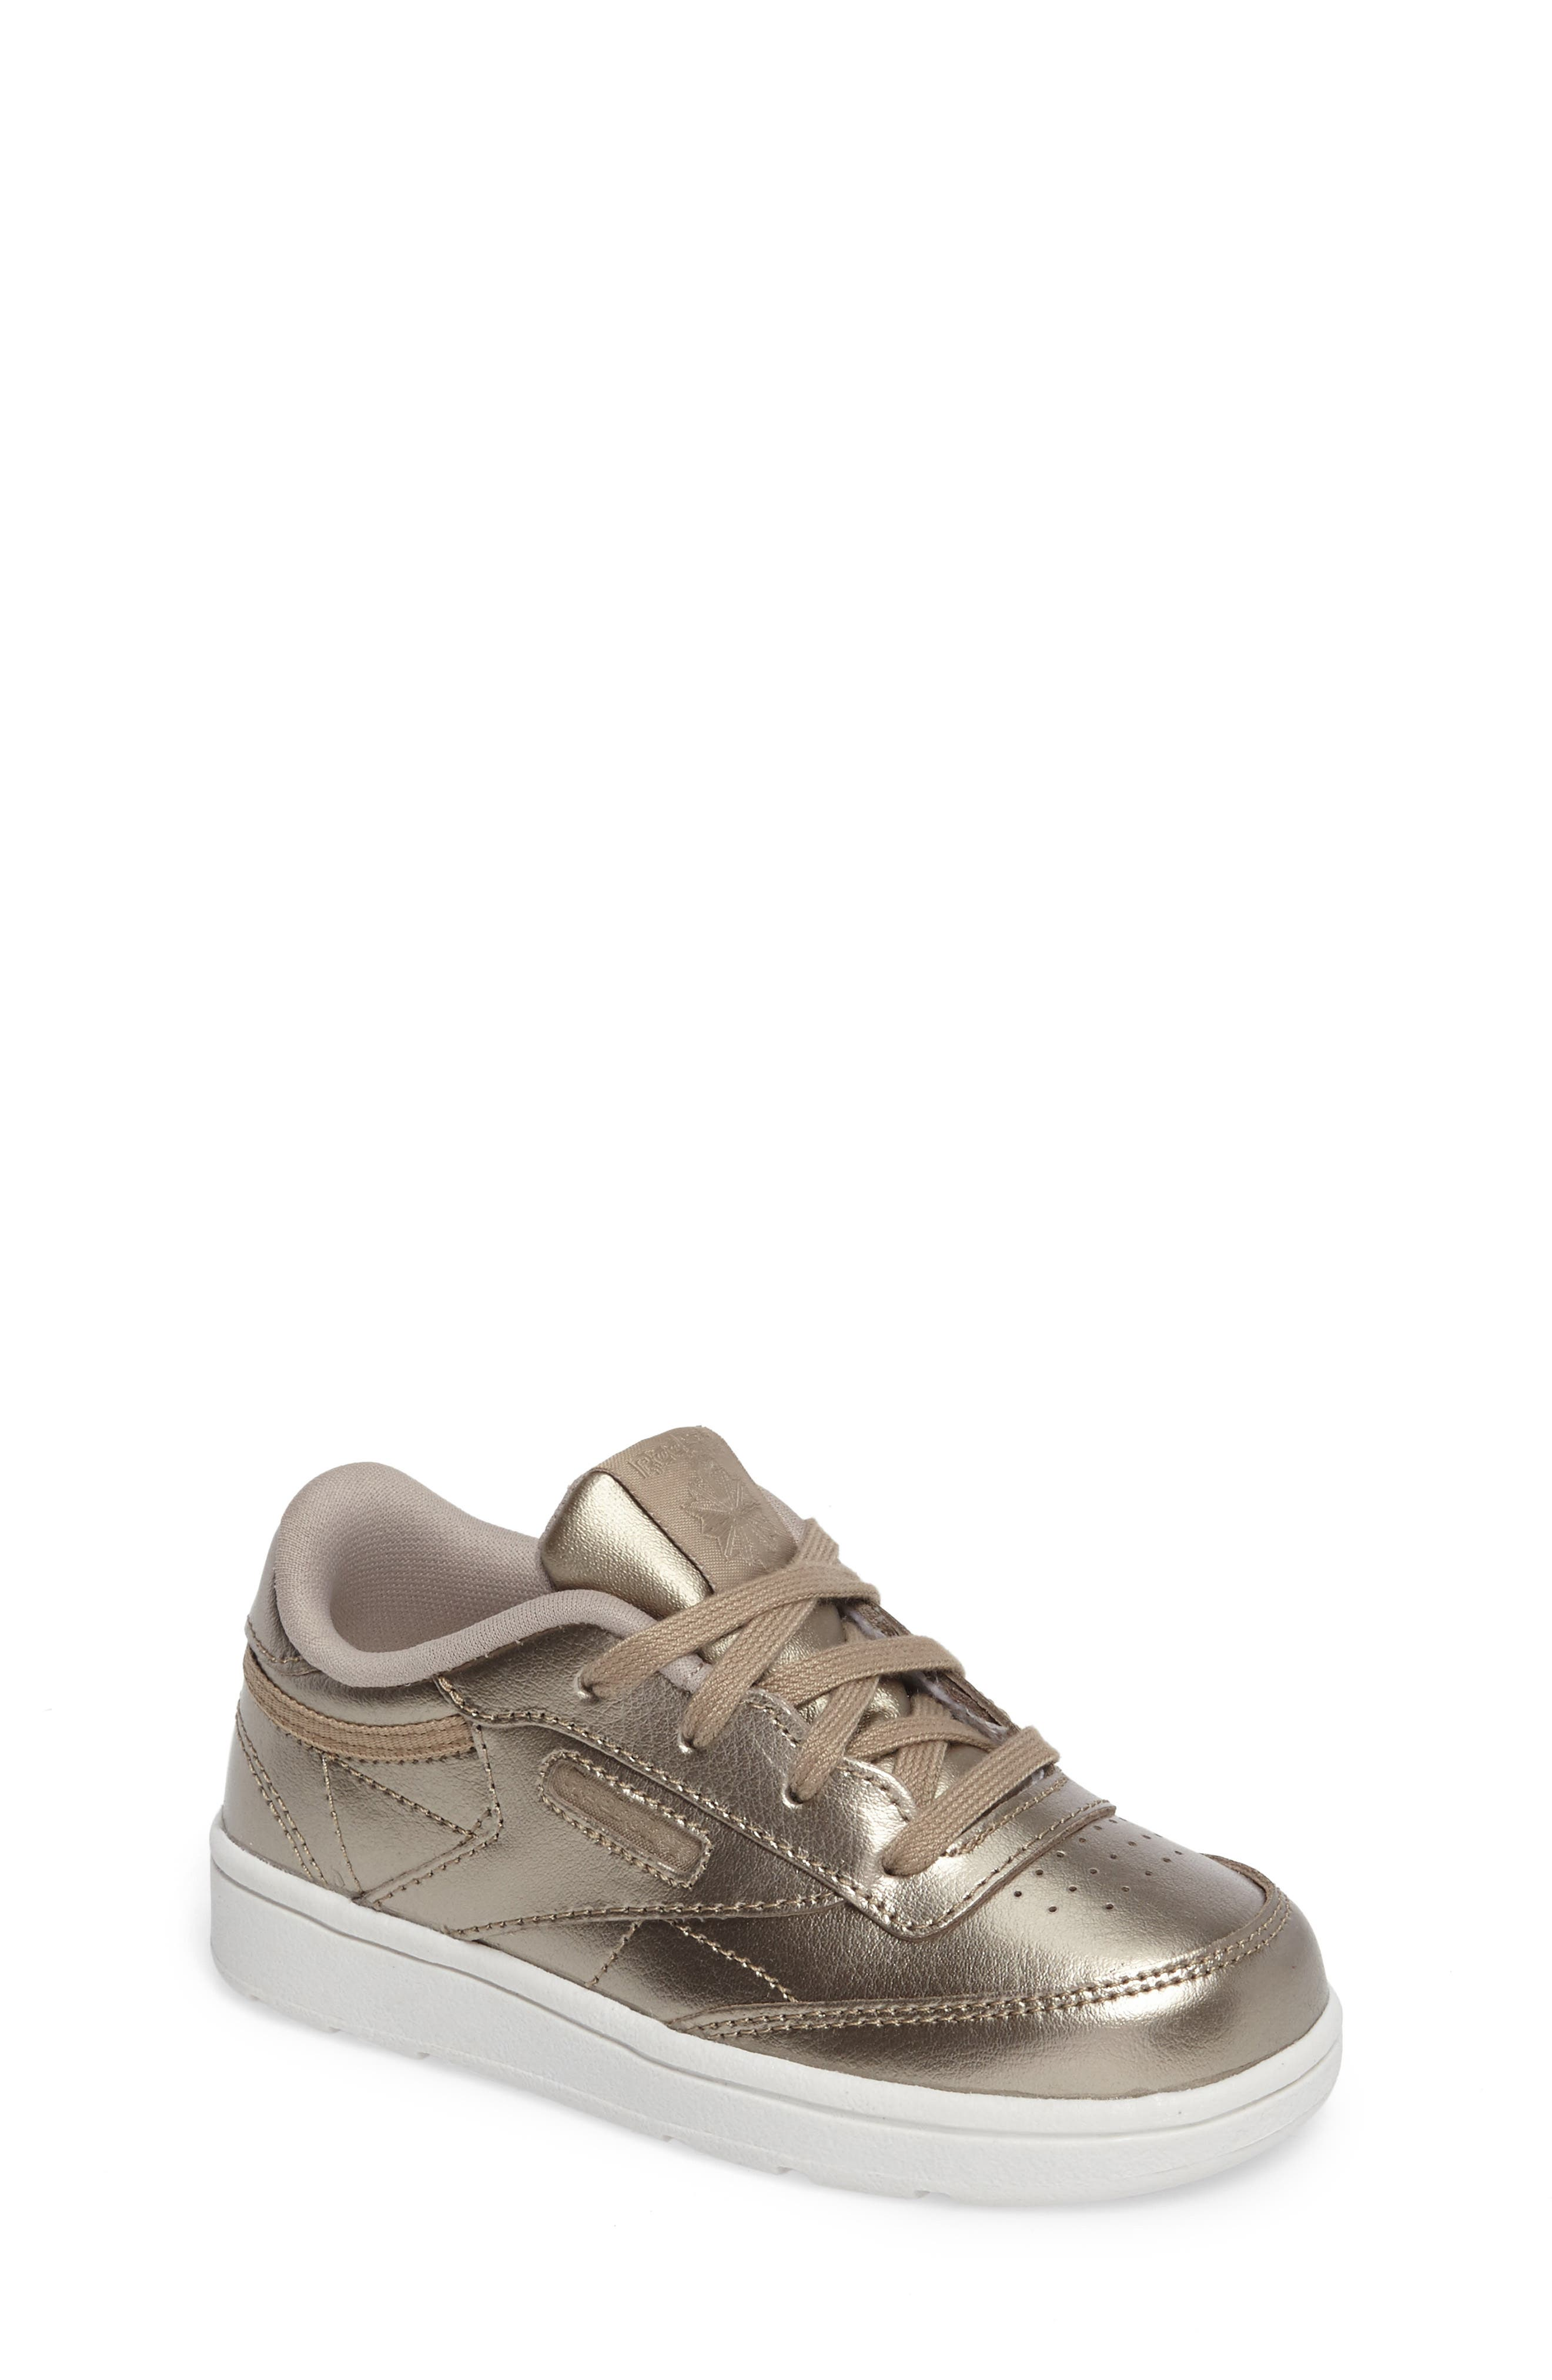 Alternate Image 1 Selected - Reebok Club C Melted Metallic Sneaker (Baby, Walker & Toddler)